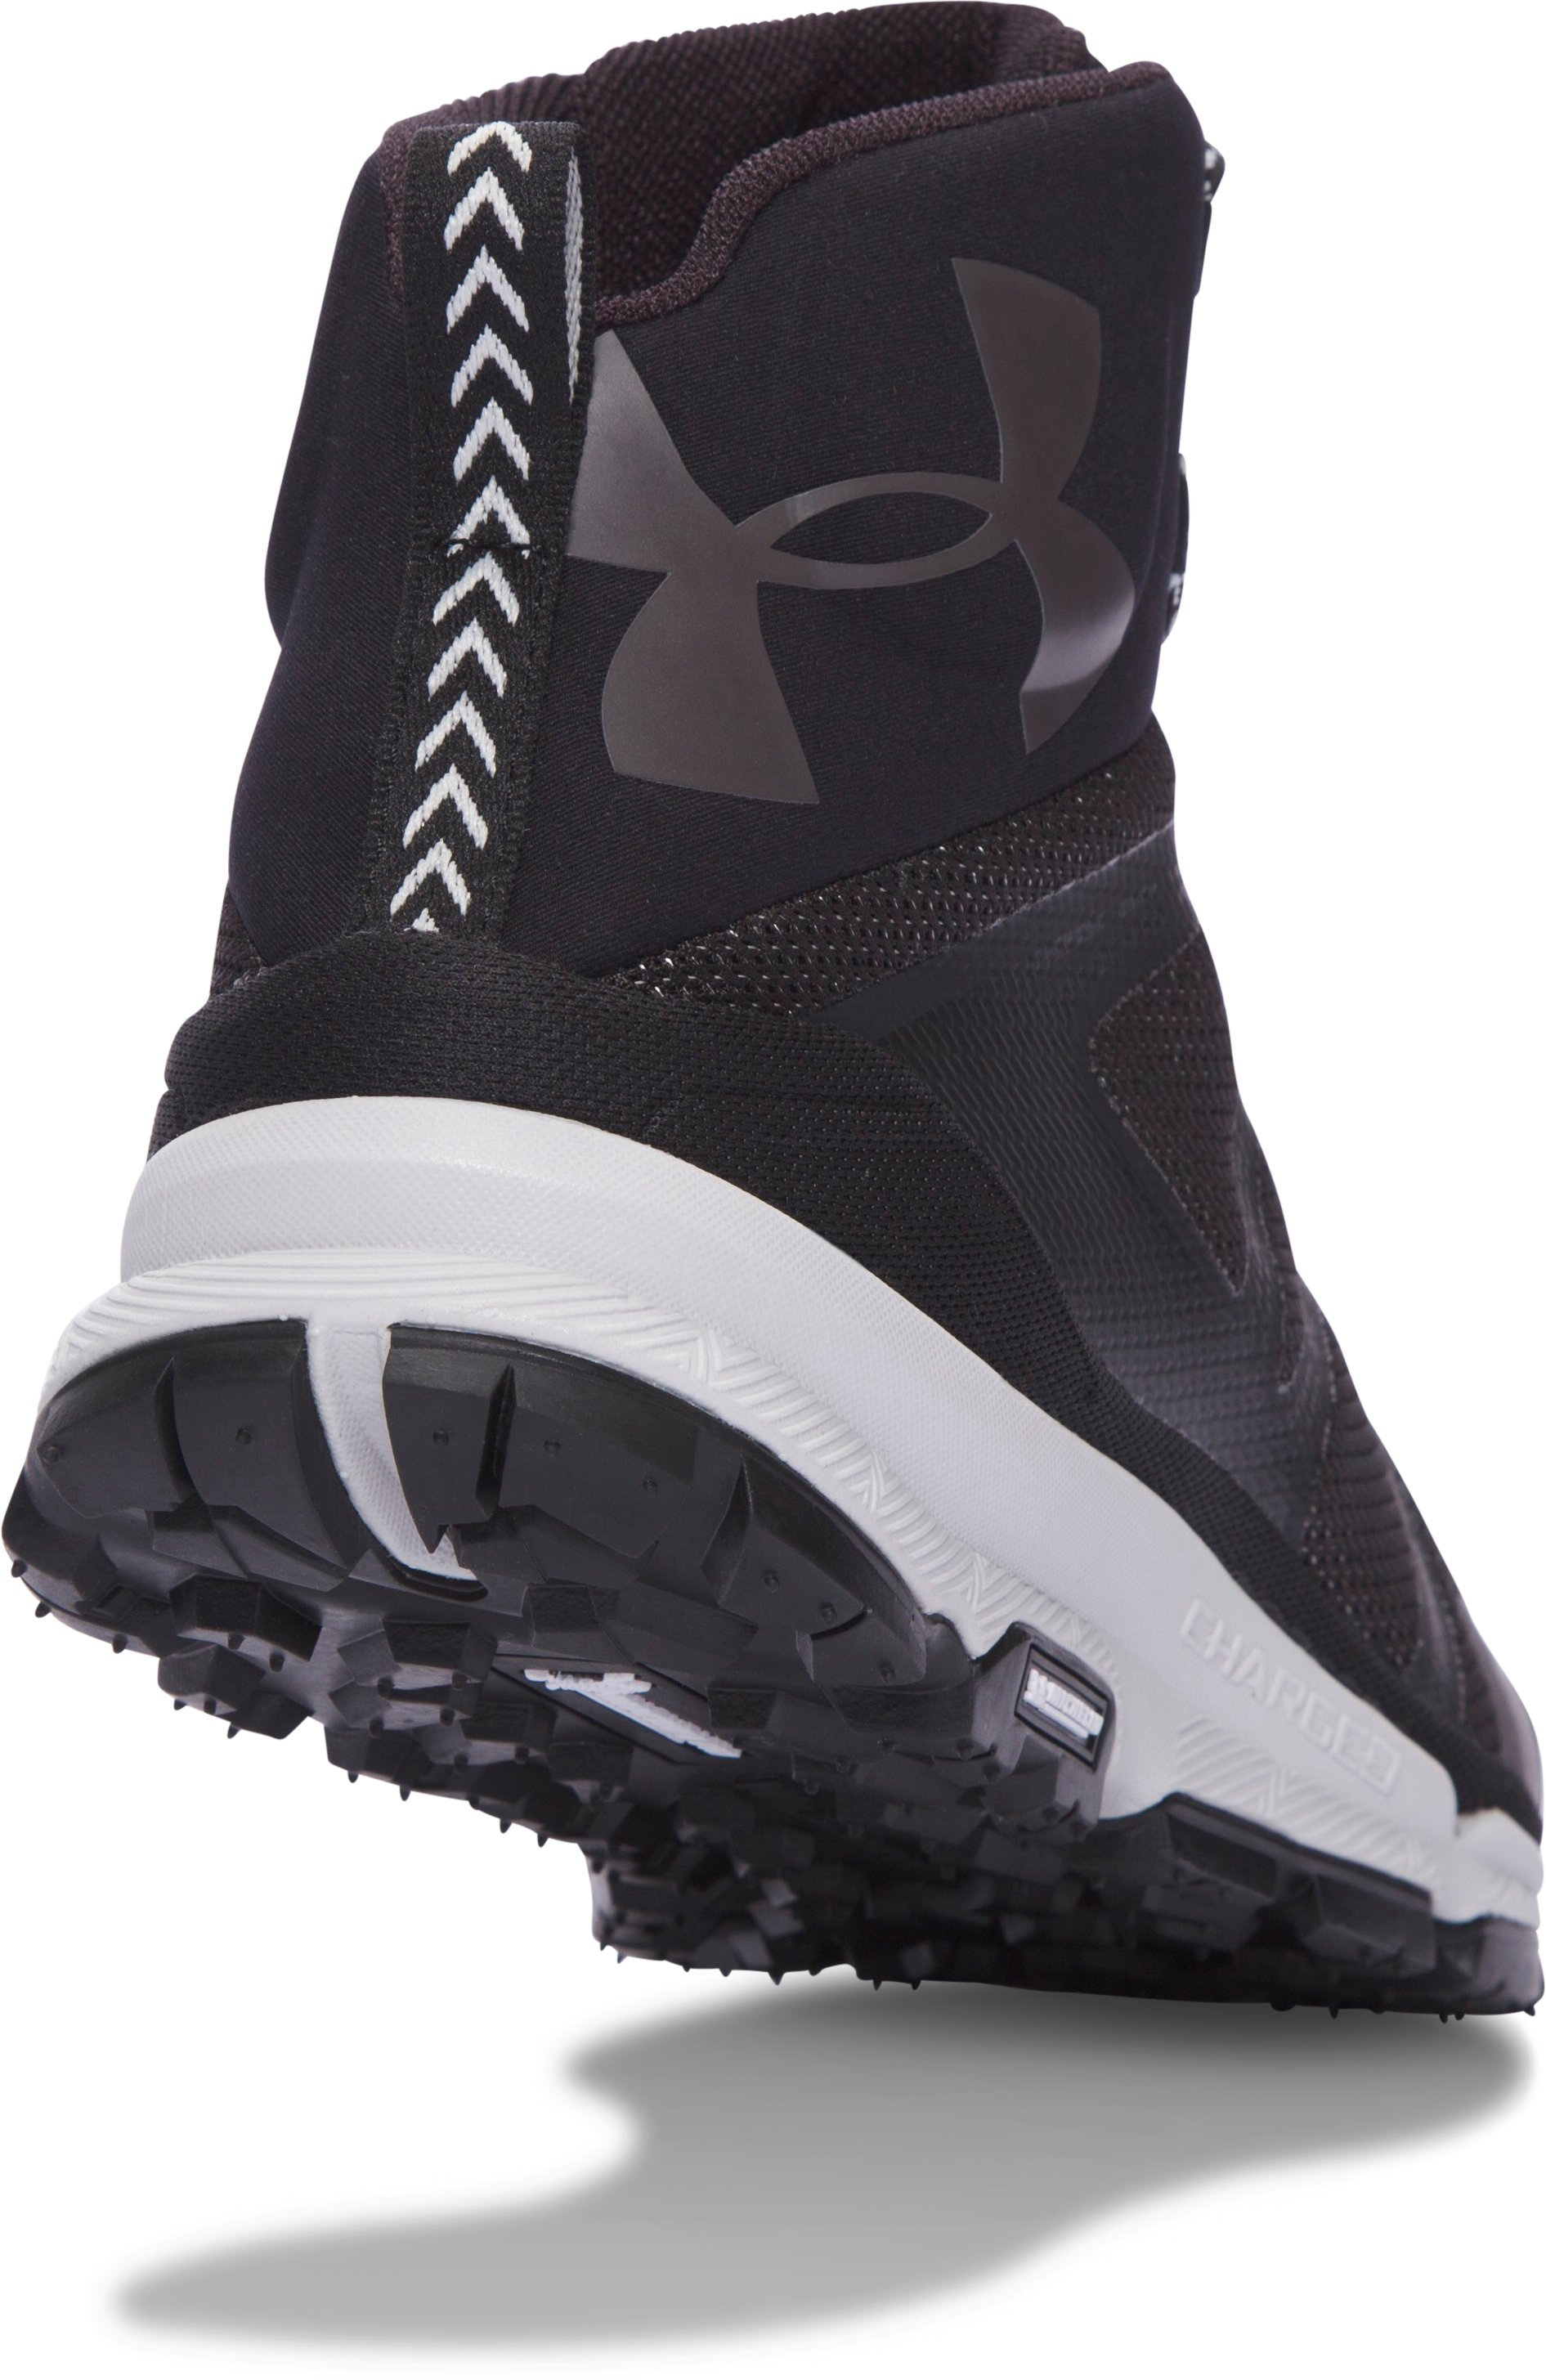 Men's UA Verge Mid Hiking Boots, Black